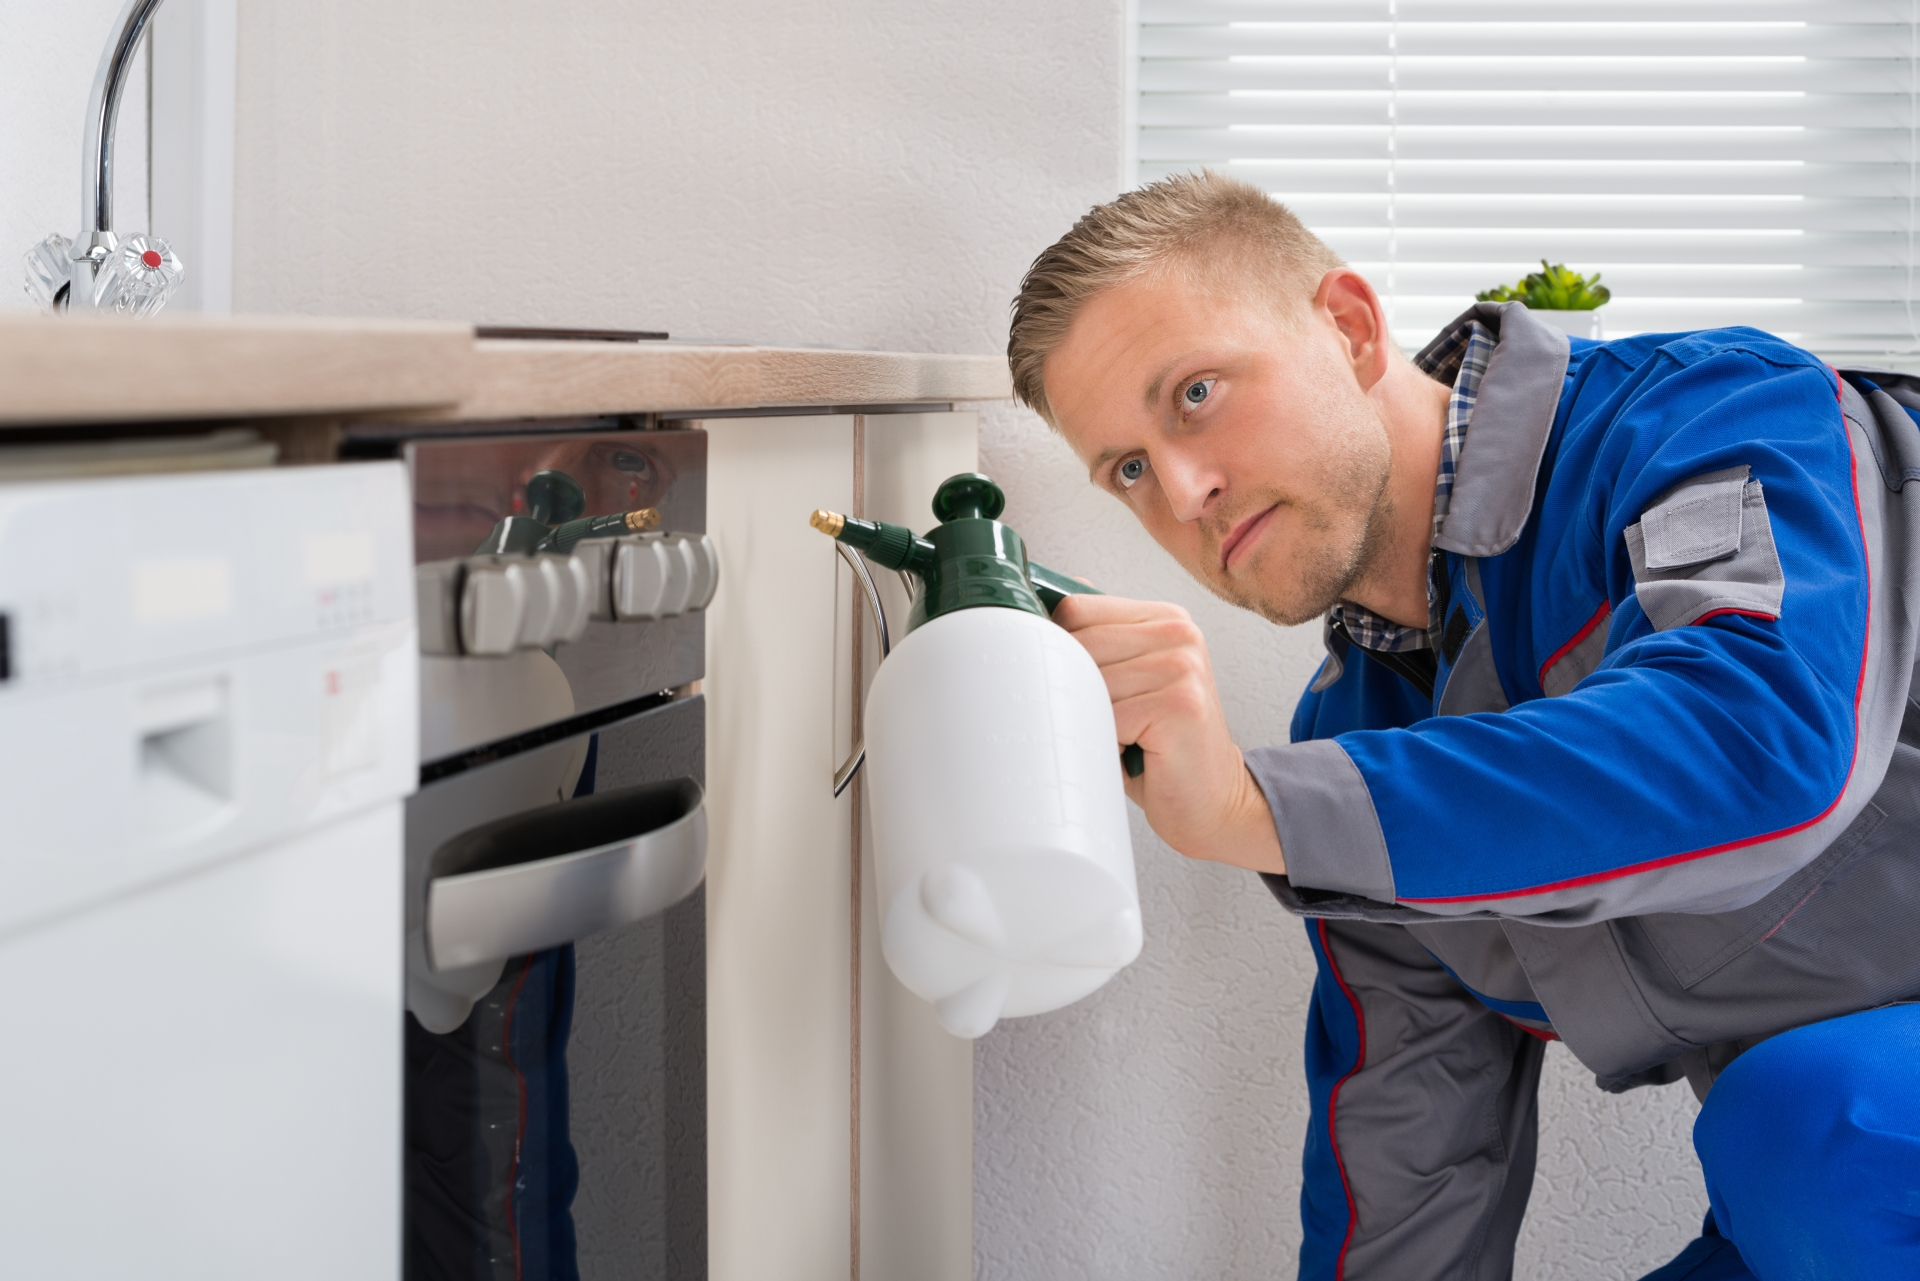 Pest Inspection, Pest Control in Heston, Osterley, TW5. Call Now 020 8166 9746